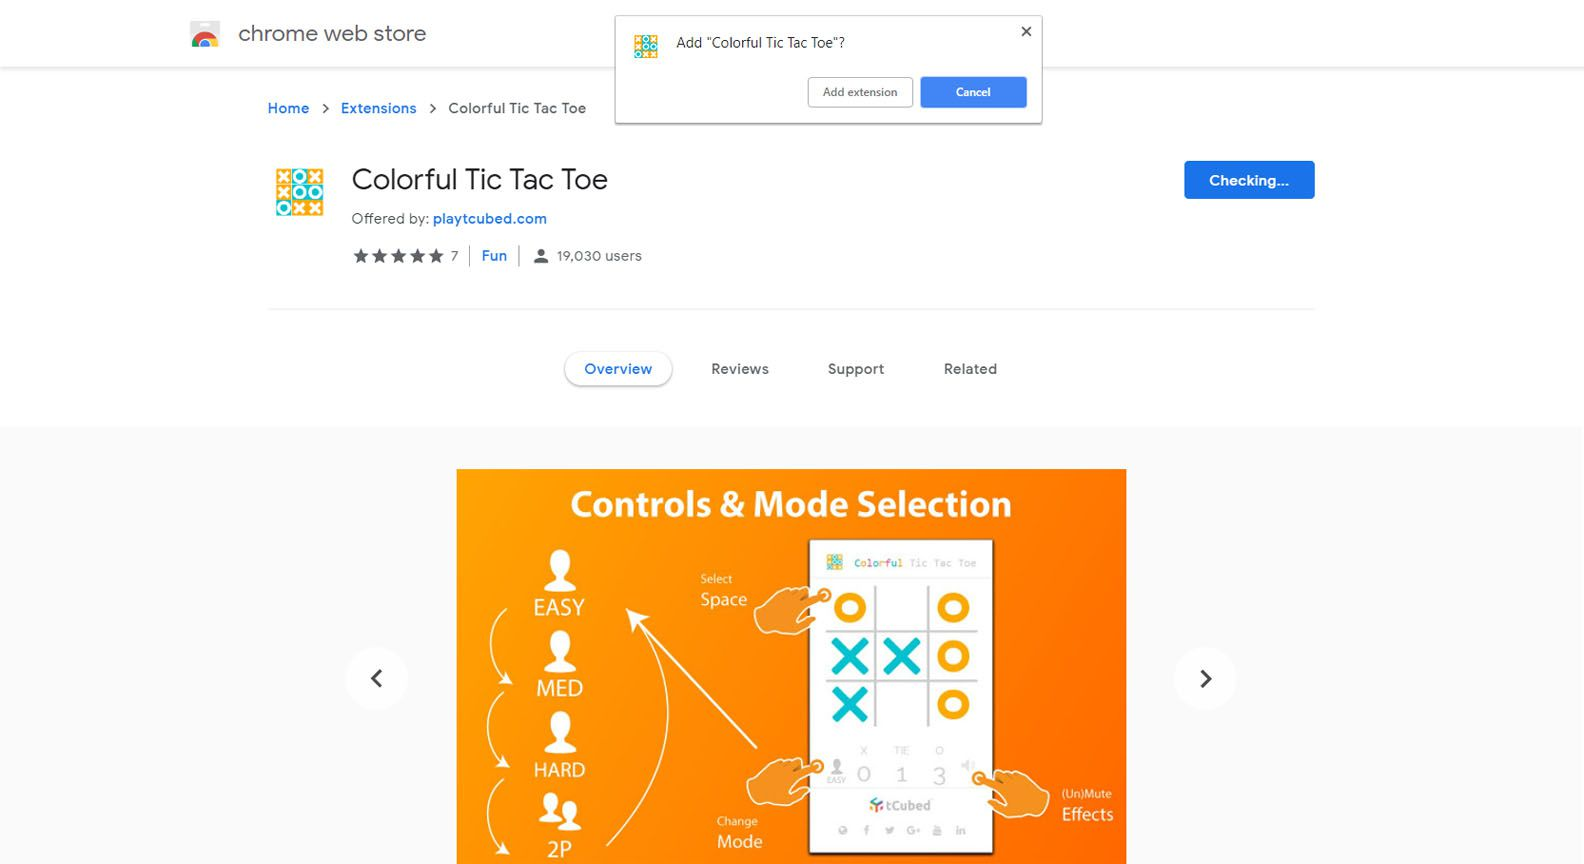 Dialog box for adding Colorful Tic Tac Toe Chrome extension